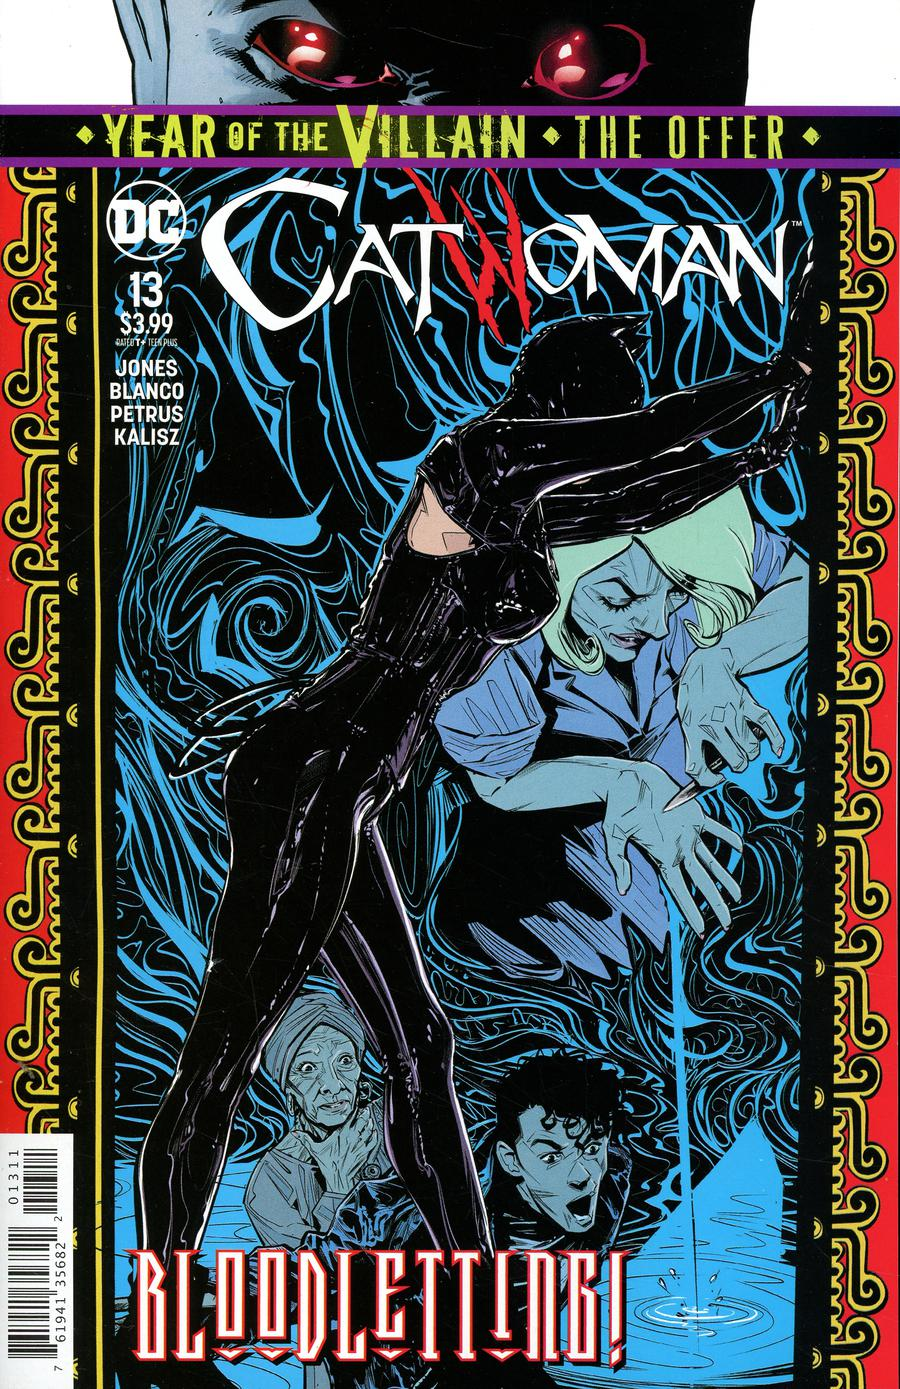 Catwoman Vol 5 #13 Cover A Regular Joelle Jones Cover (Year Of The Villain The Offer Tie-In)